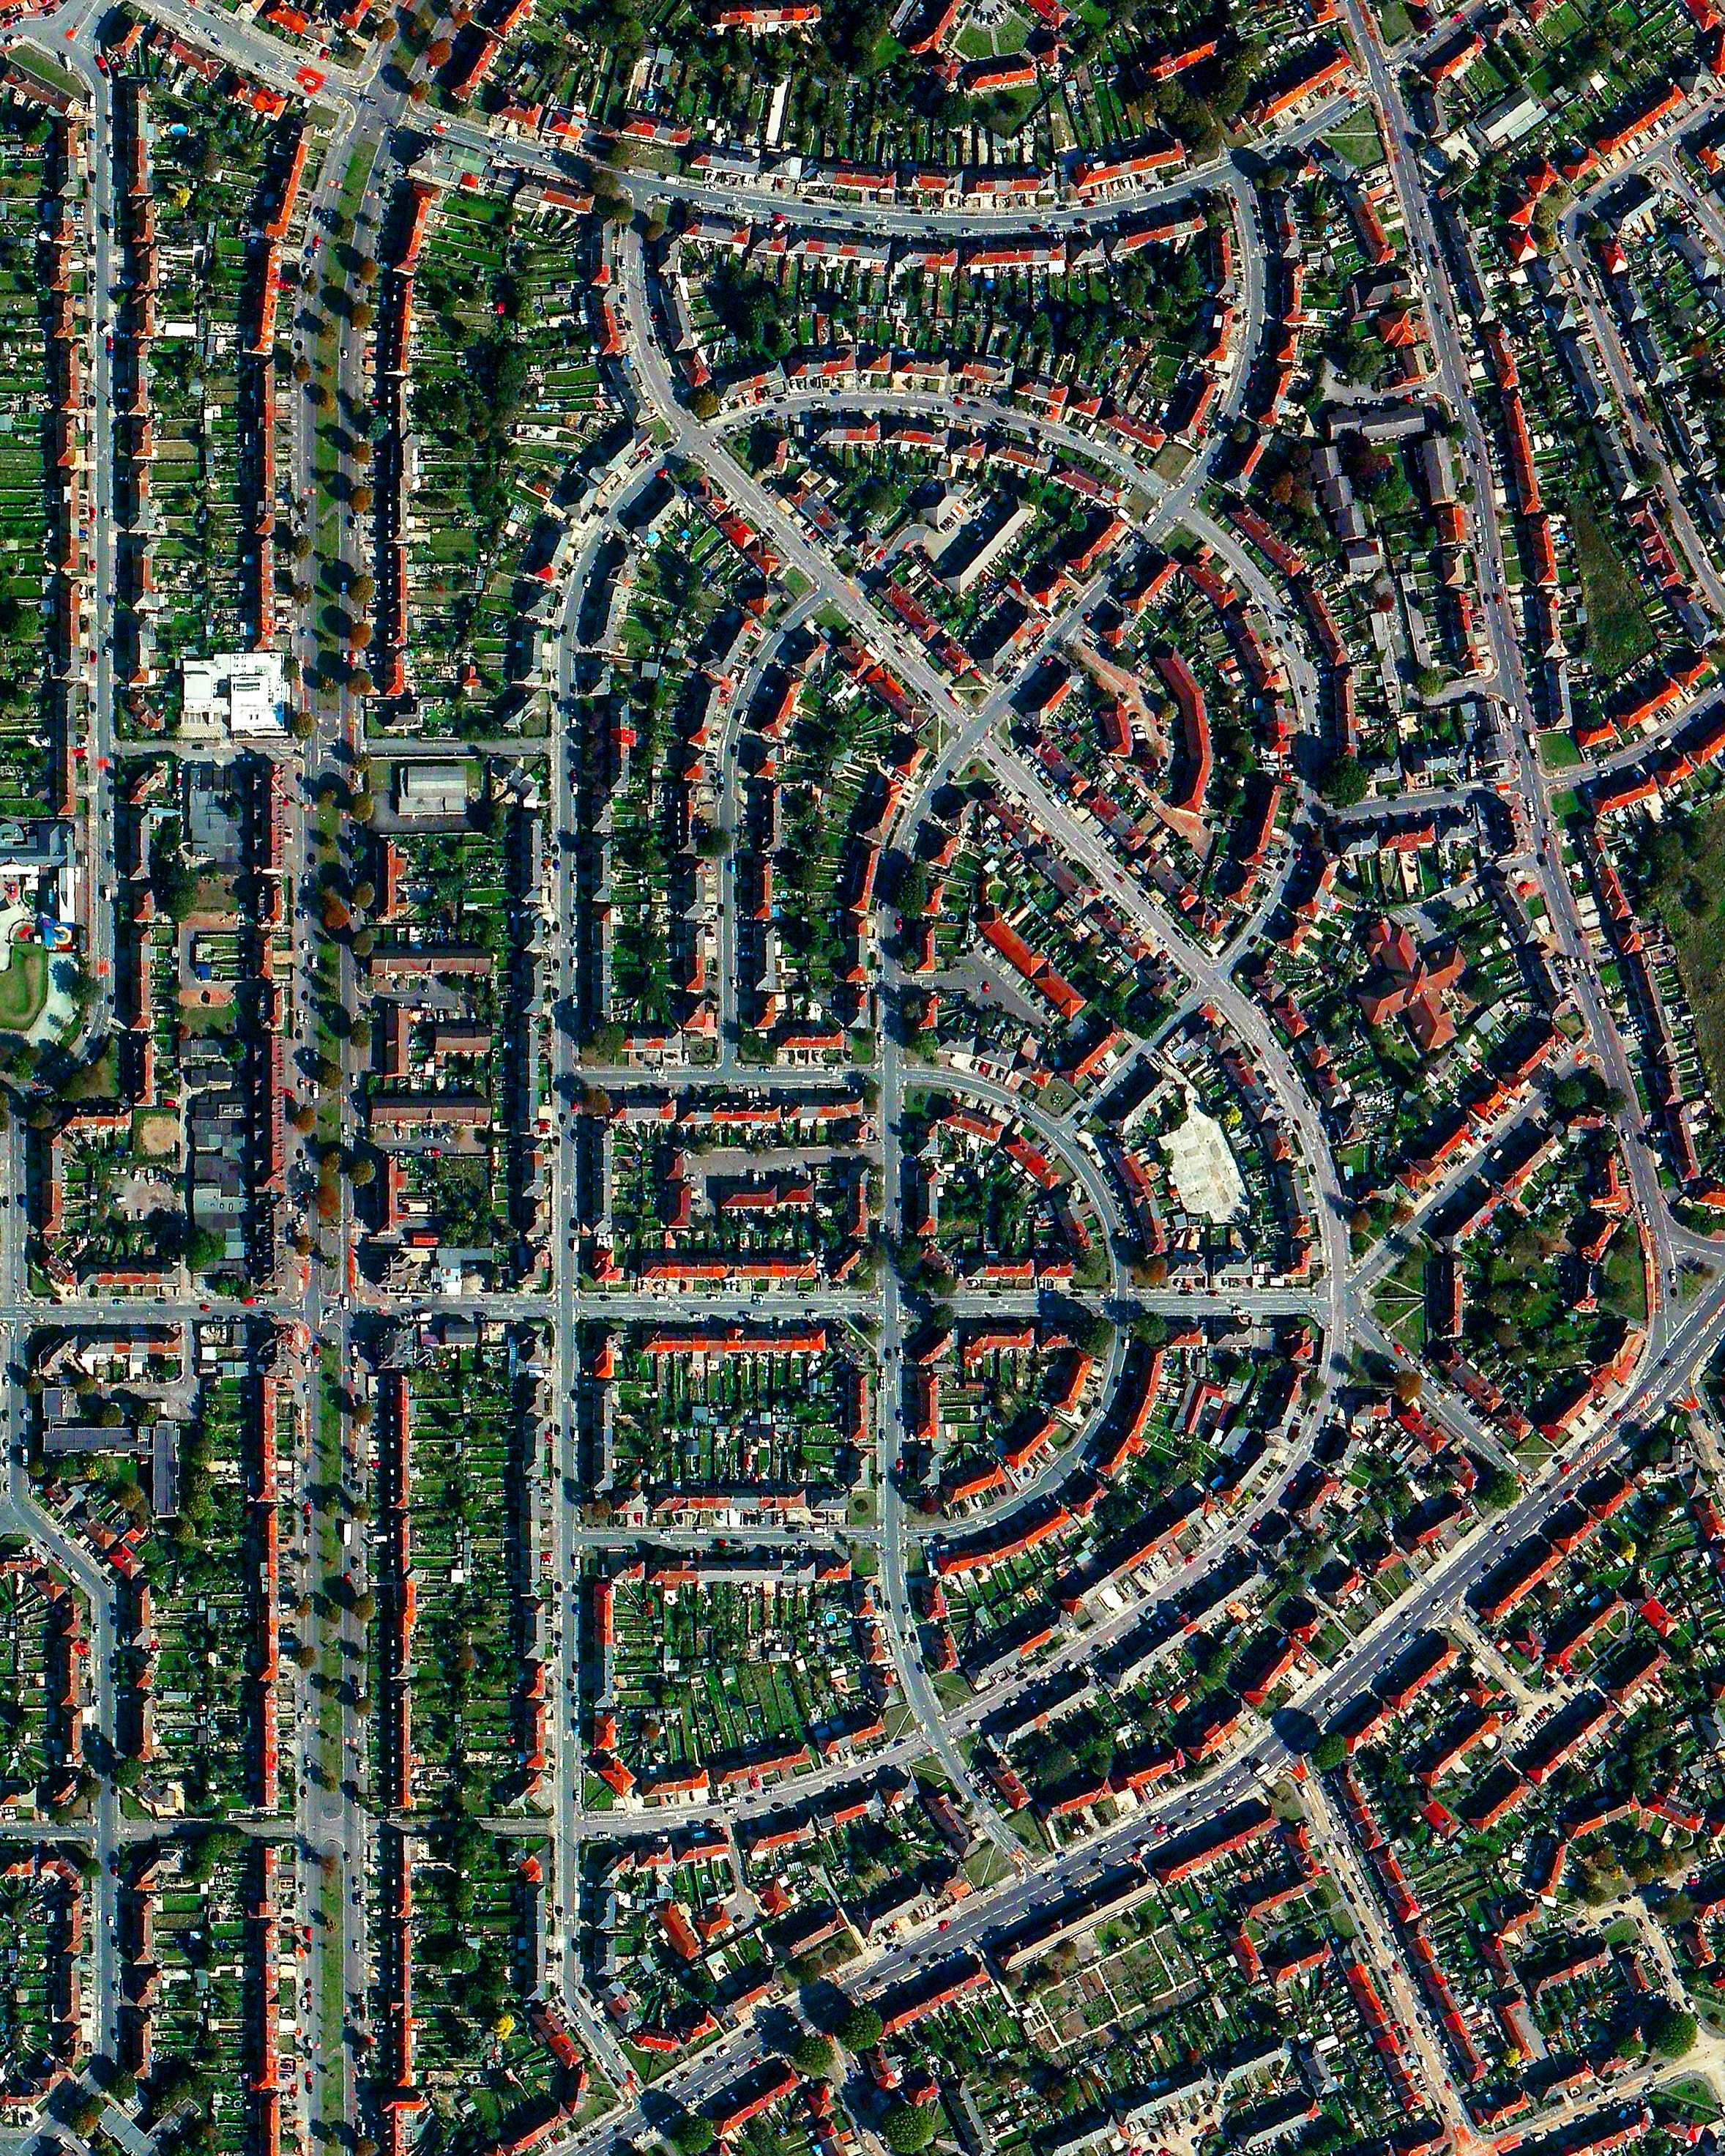 """To celebrate yesterday's launch of  """"Overview""""  in the UK, here is a mesmerizing view of residential development in the London suburb of Dagenham. Thank you to everyone who has ordered the book, left an Amazon review, or simply helped to spread the word about the project so far. As I write this in New York, it is very powerful to see this idea resonate not only across the pond, but across the globe. If you have friends in the UK that you think would enjoy the Overviews or the book, a tag or share would be enormously helpful to keep the momentum going. I hope everyone has a fantastic weekend, wherever you are in the world!"""